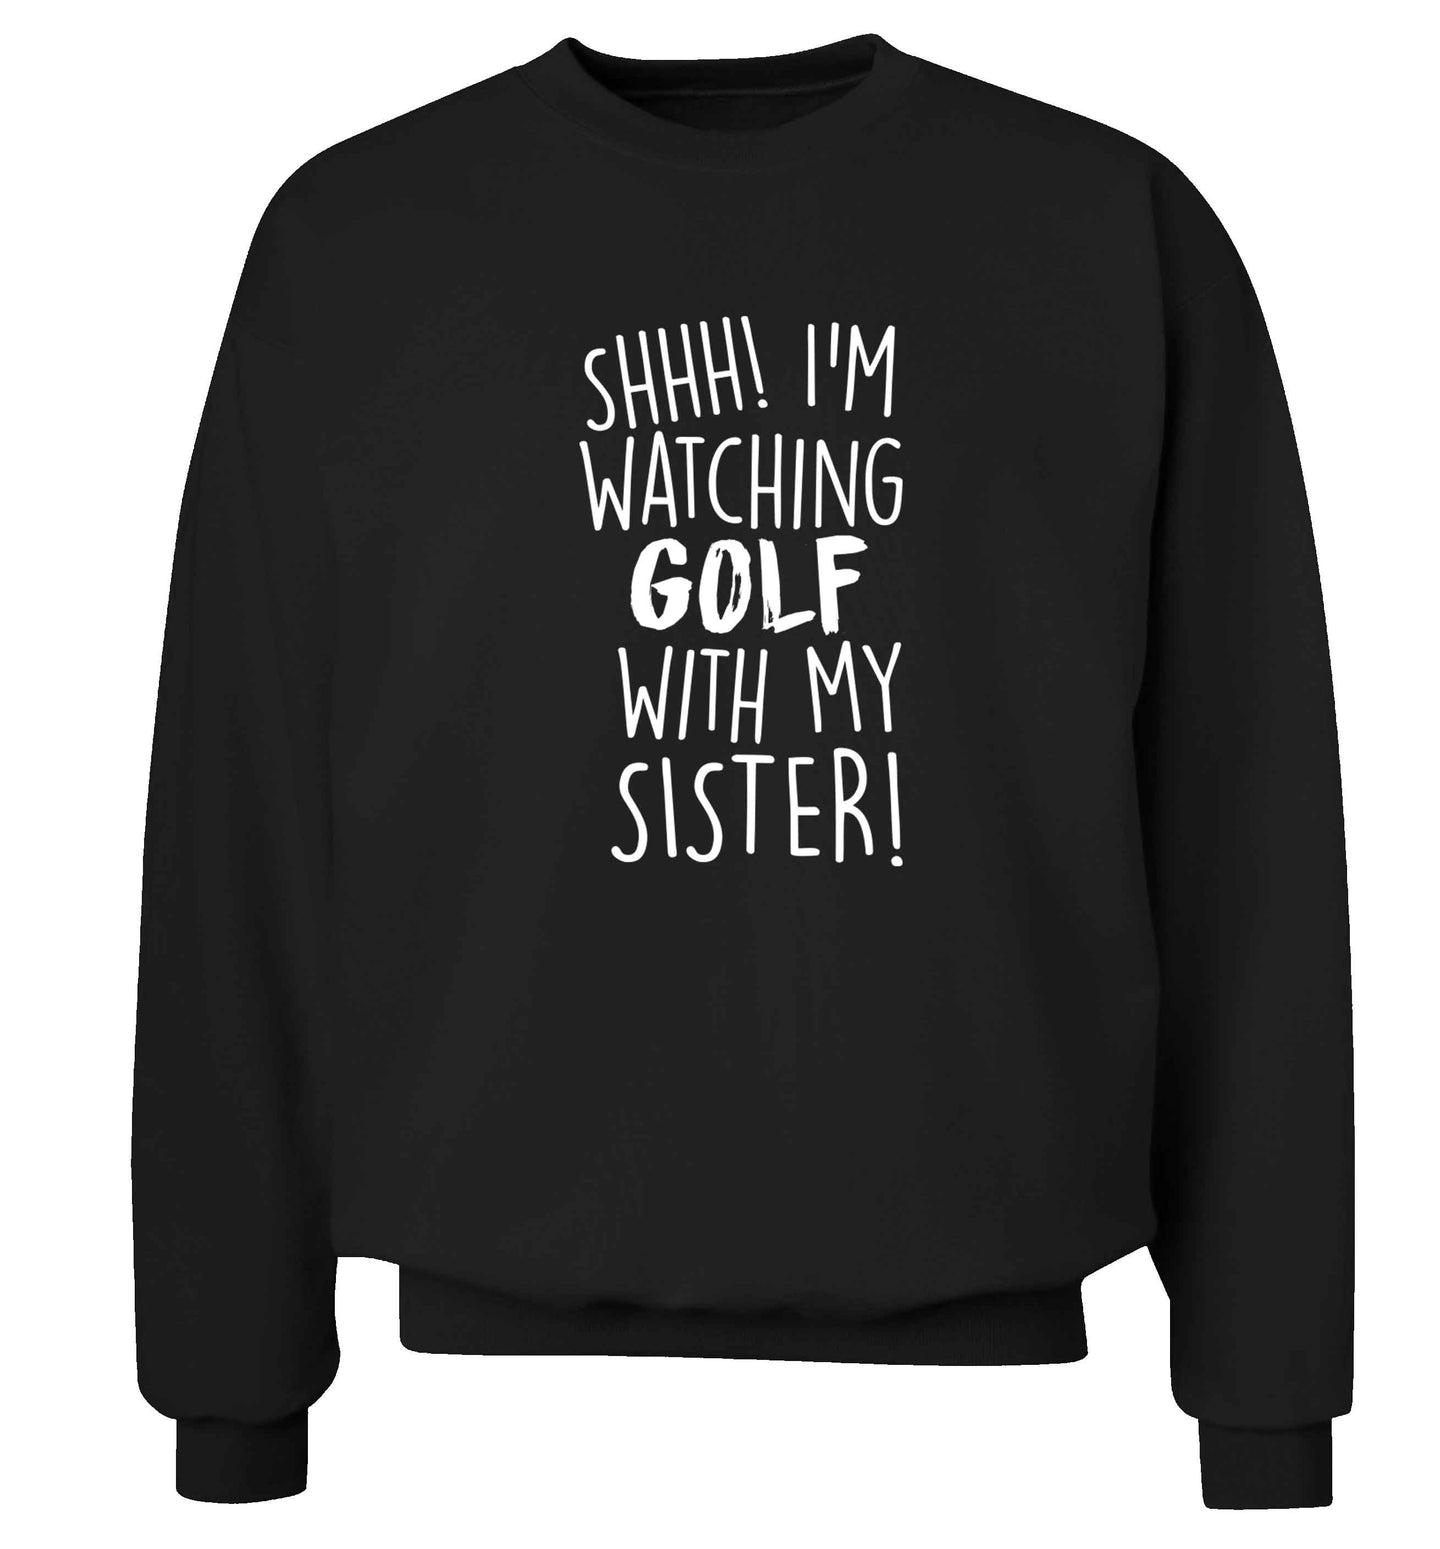 Shh I'm watching golf with my sister Adult's unisex black Sweater 2XL